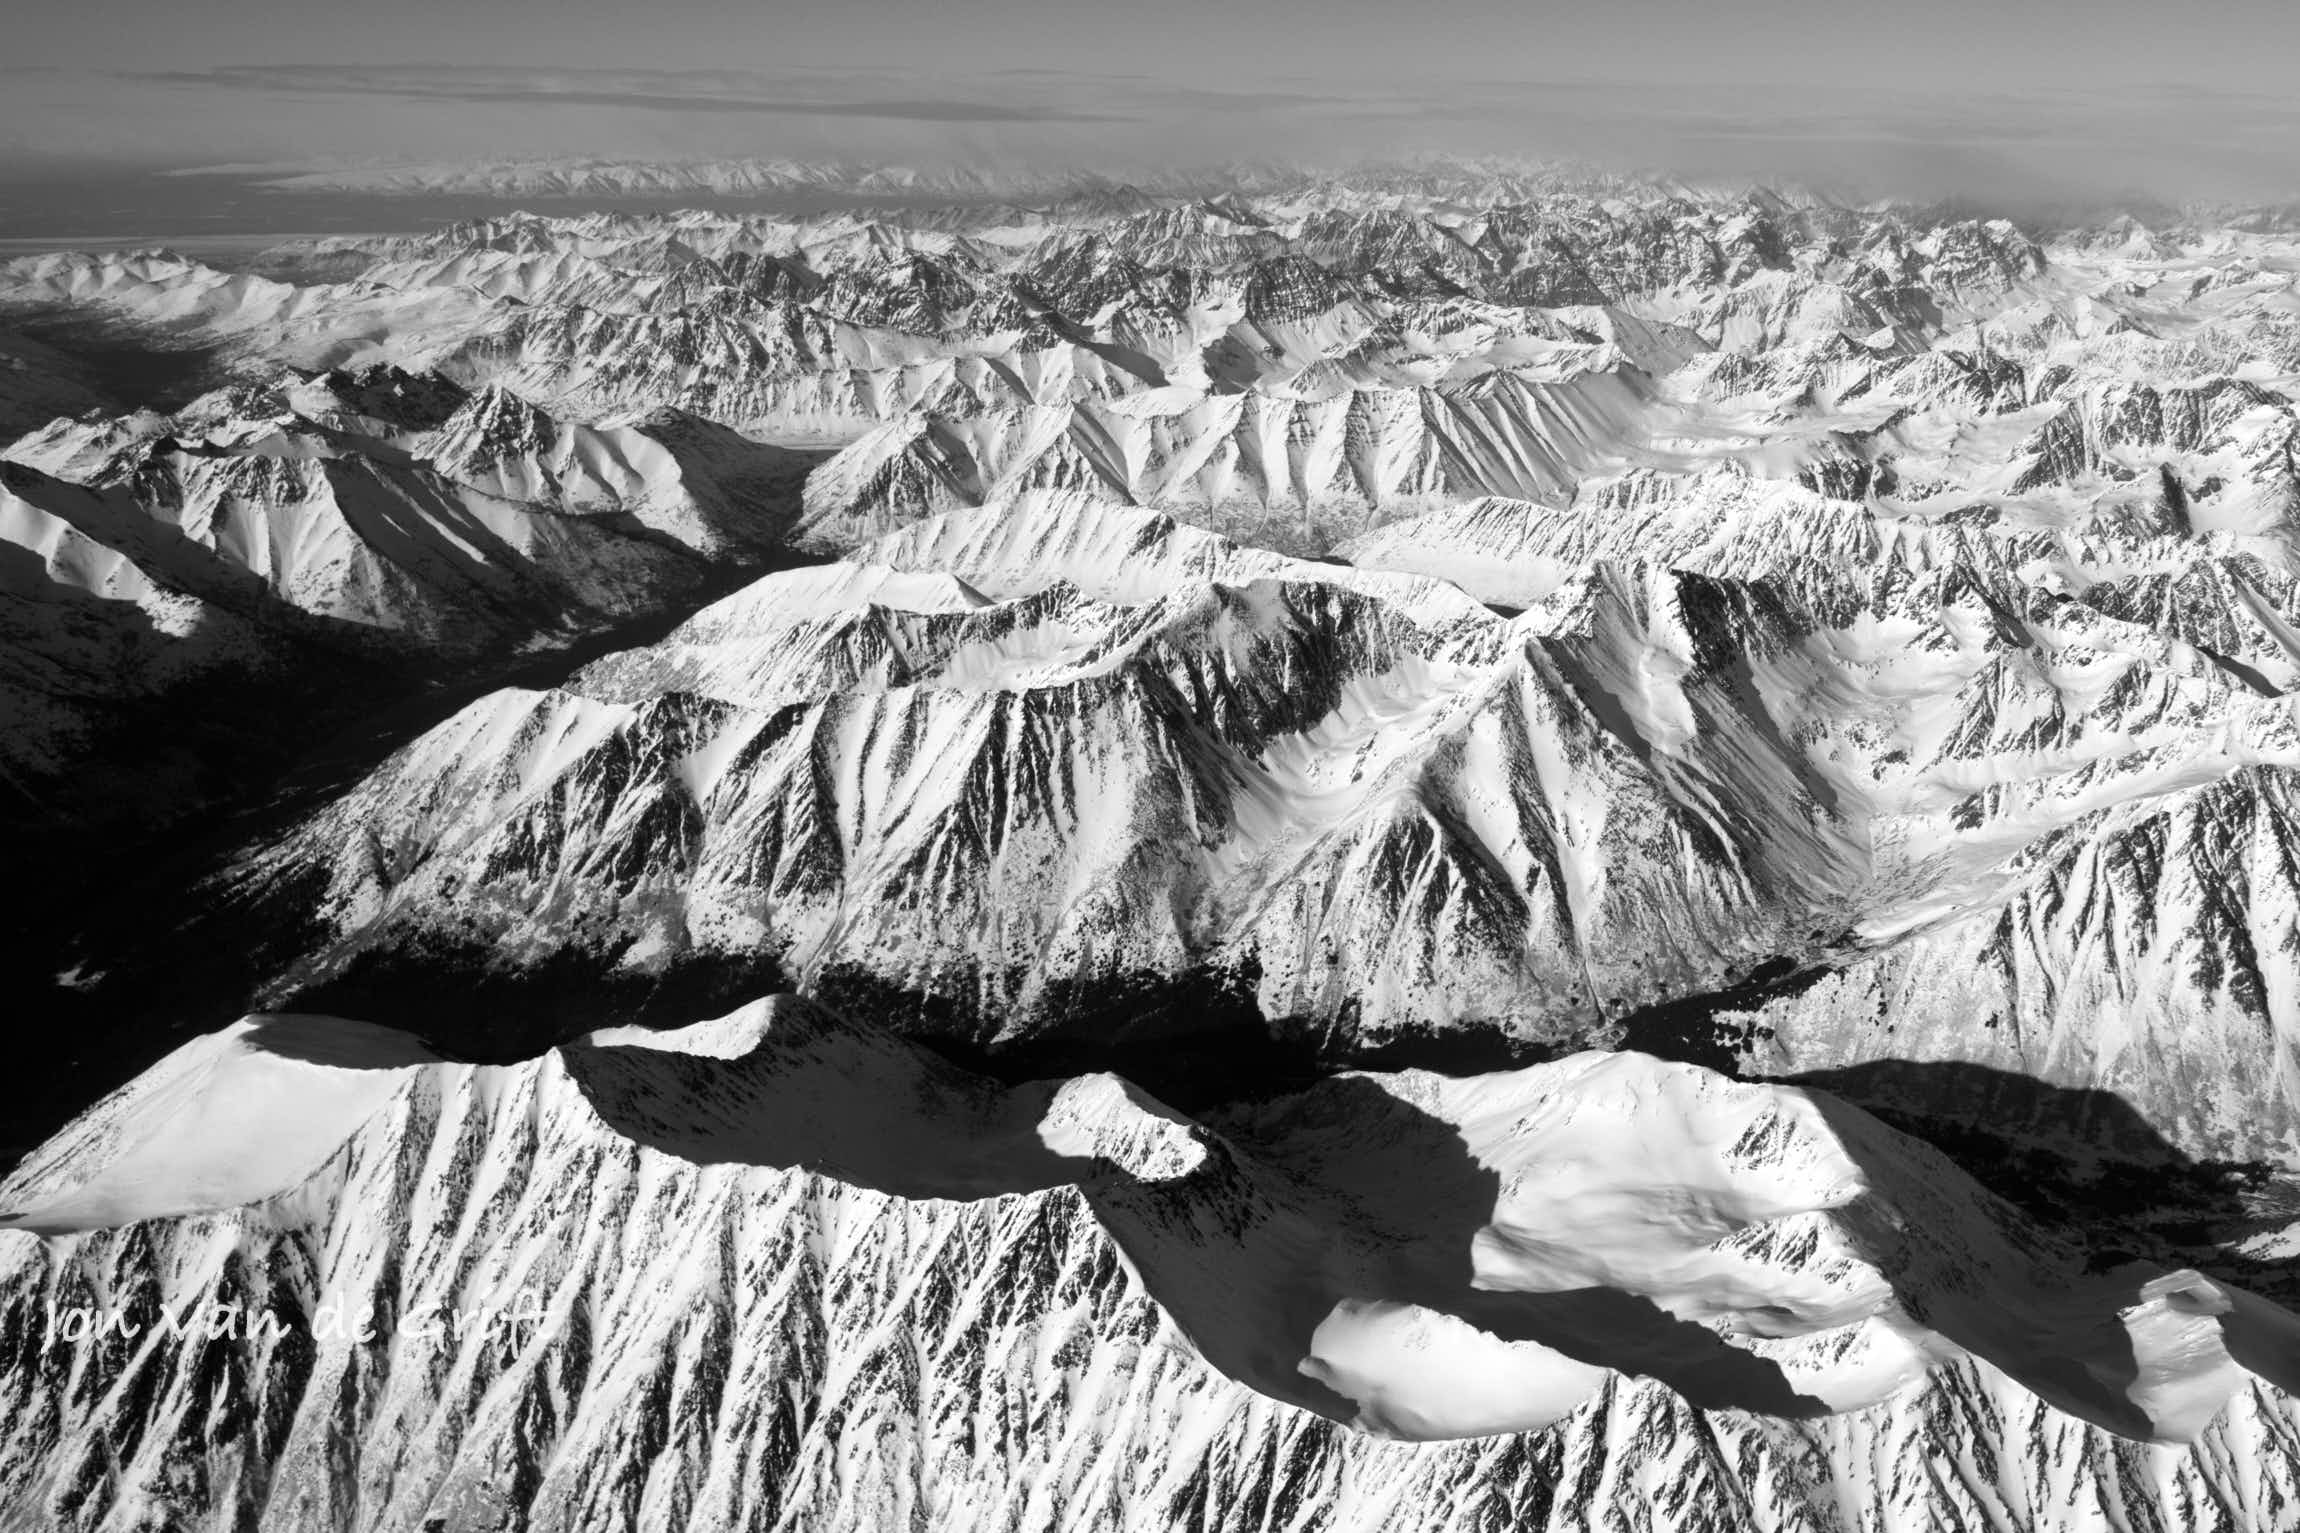 Black and white aerial photograph of Arctic mountain ranges in winter.